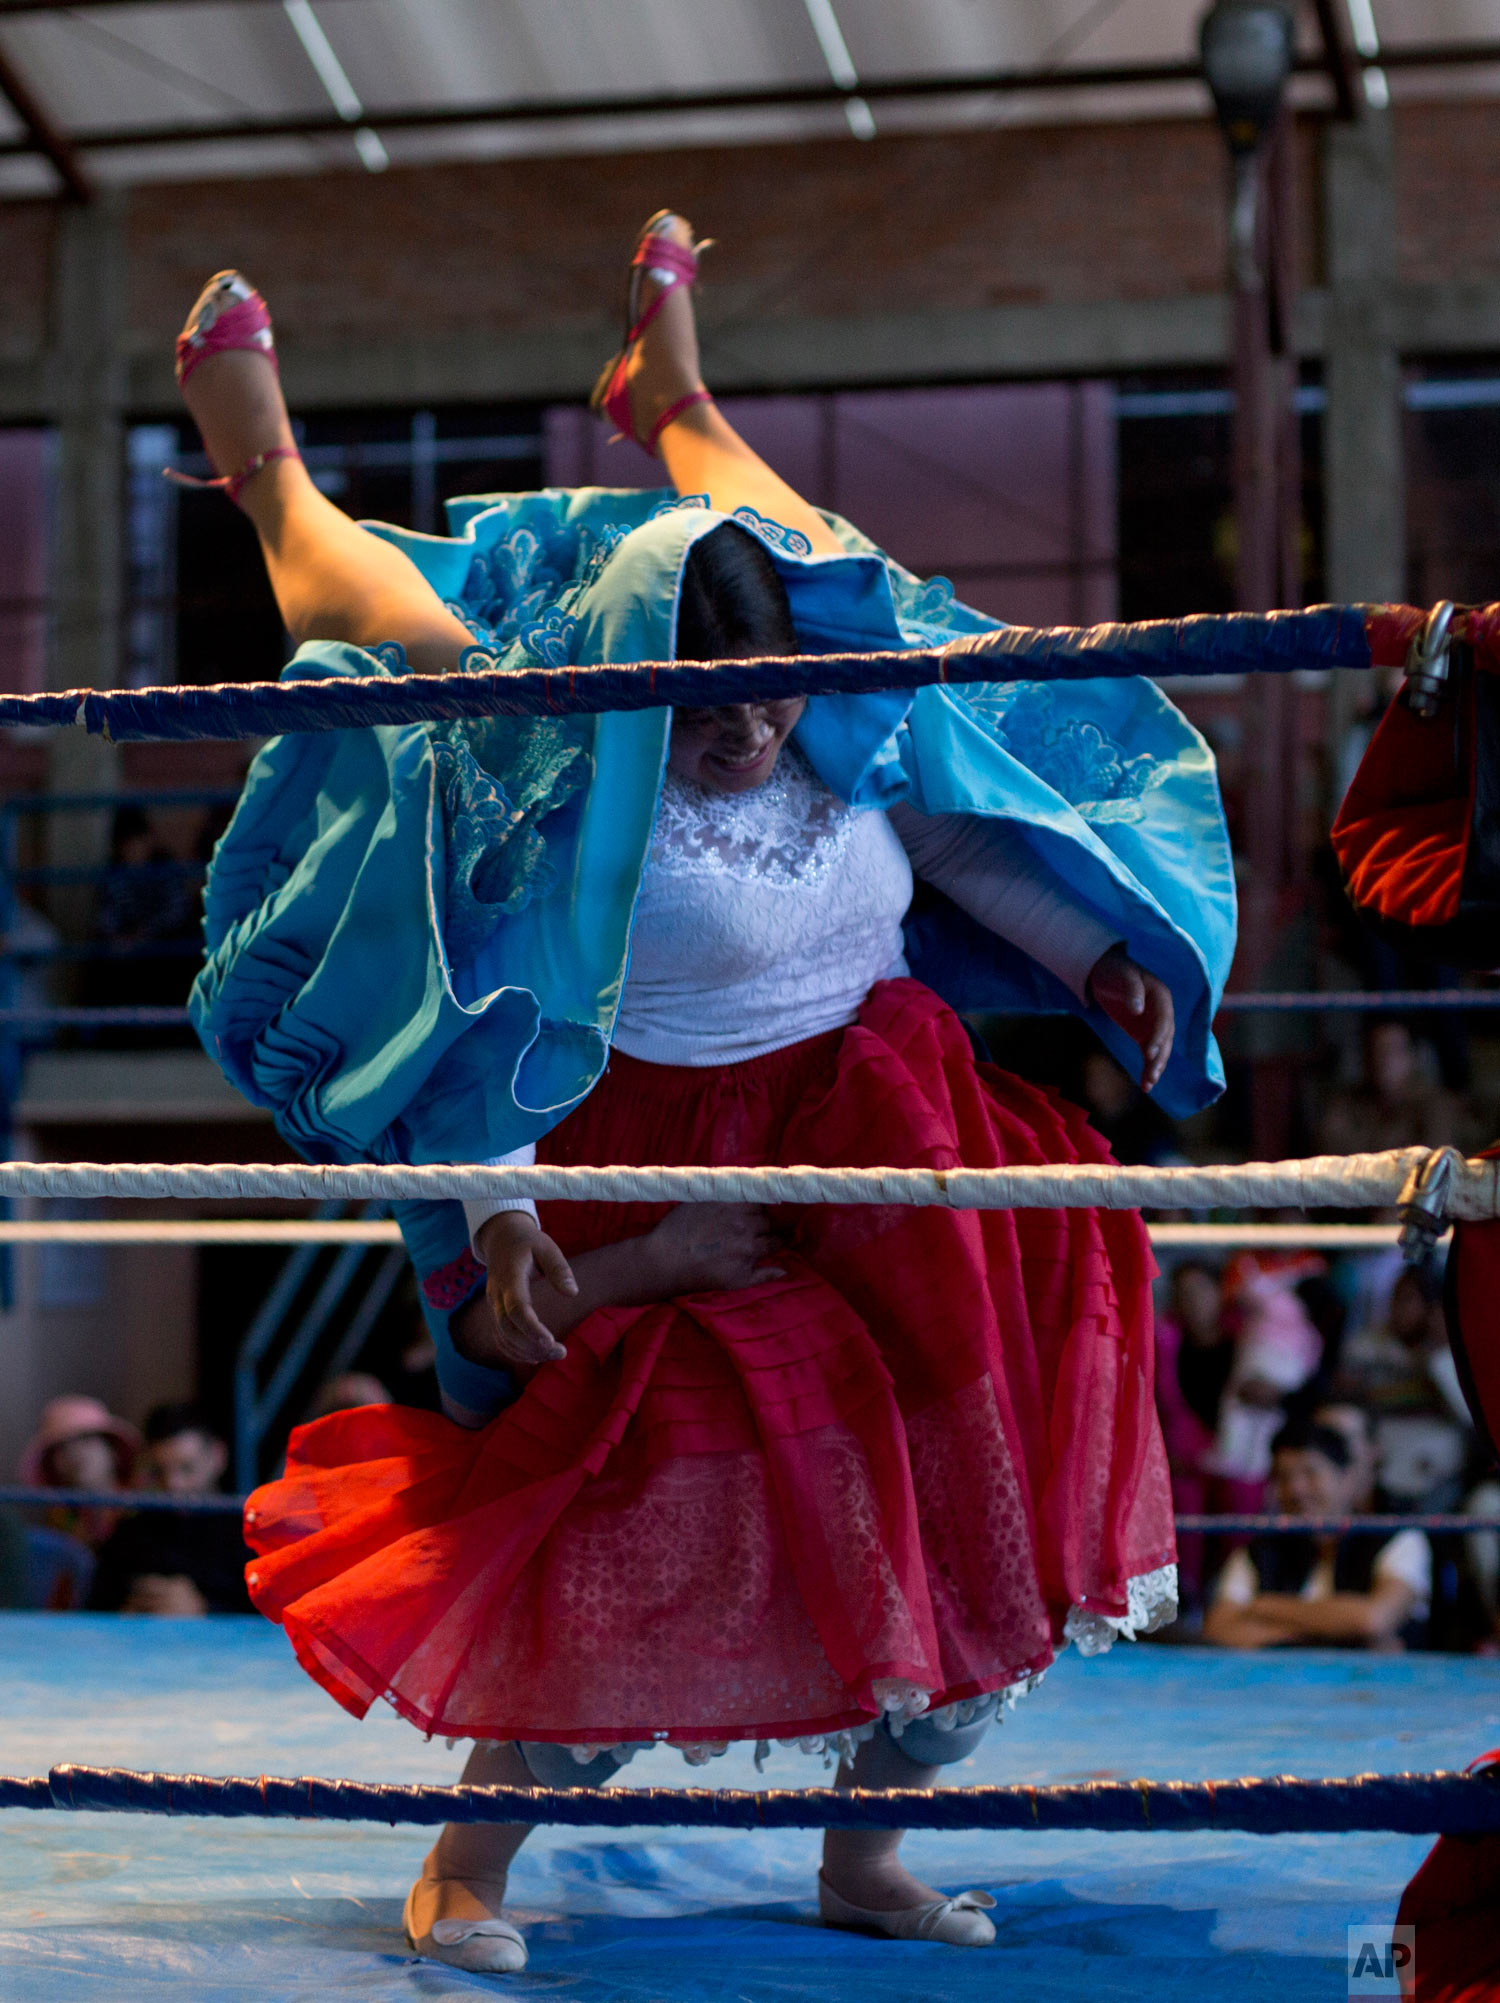 Veteran cholita wrestler Jennifer Dos Caras, 45, competes in the ring with Randy Four in El Alto, Bolivia, Jan. 21, 2019.